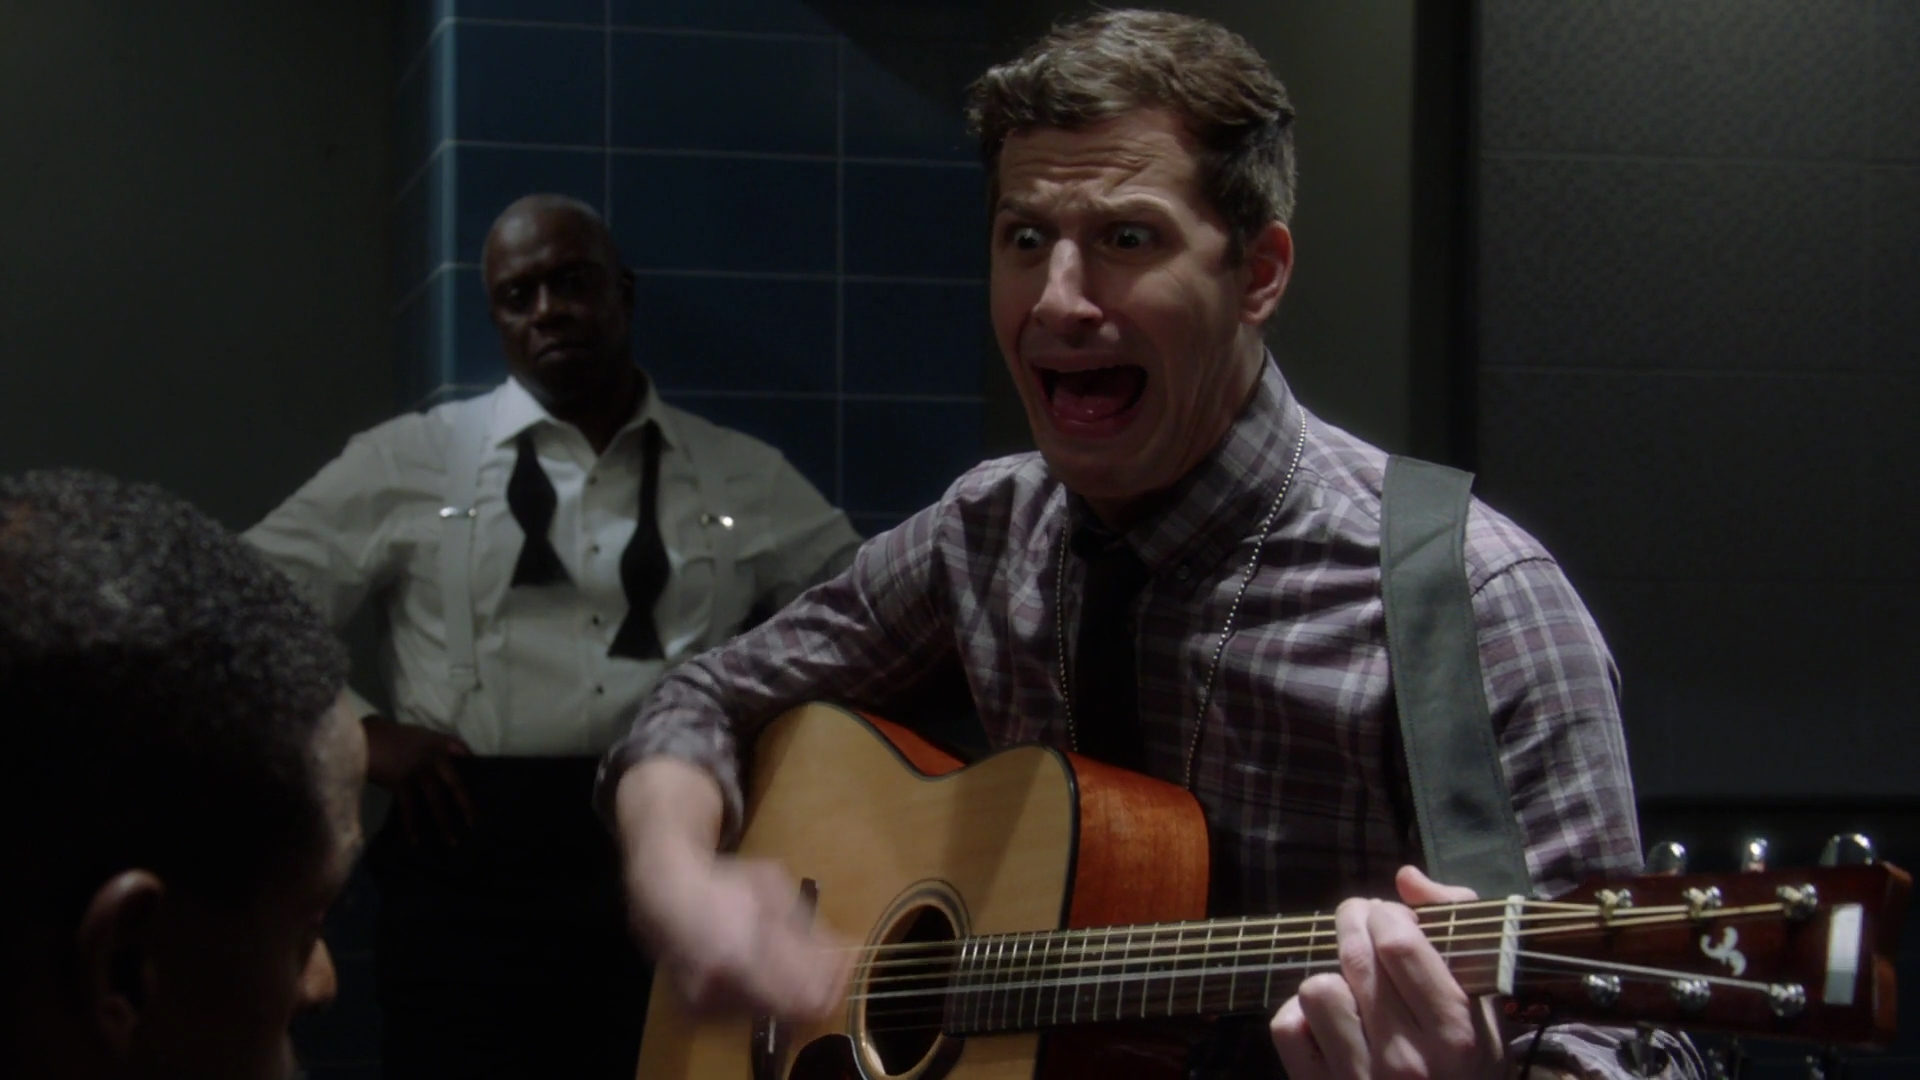 Discover the 5 Best Brooklyn 99 Episodes